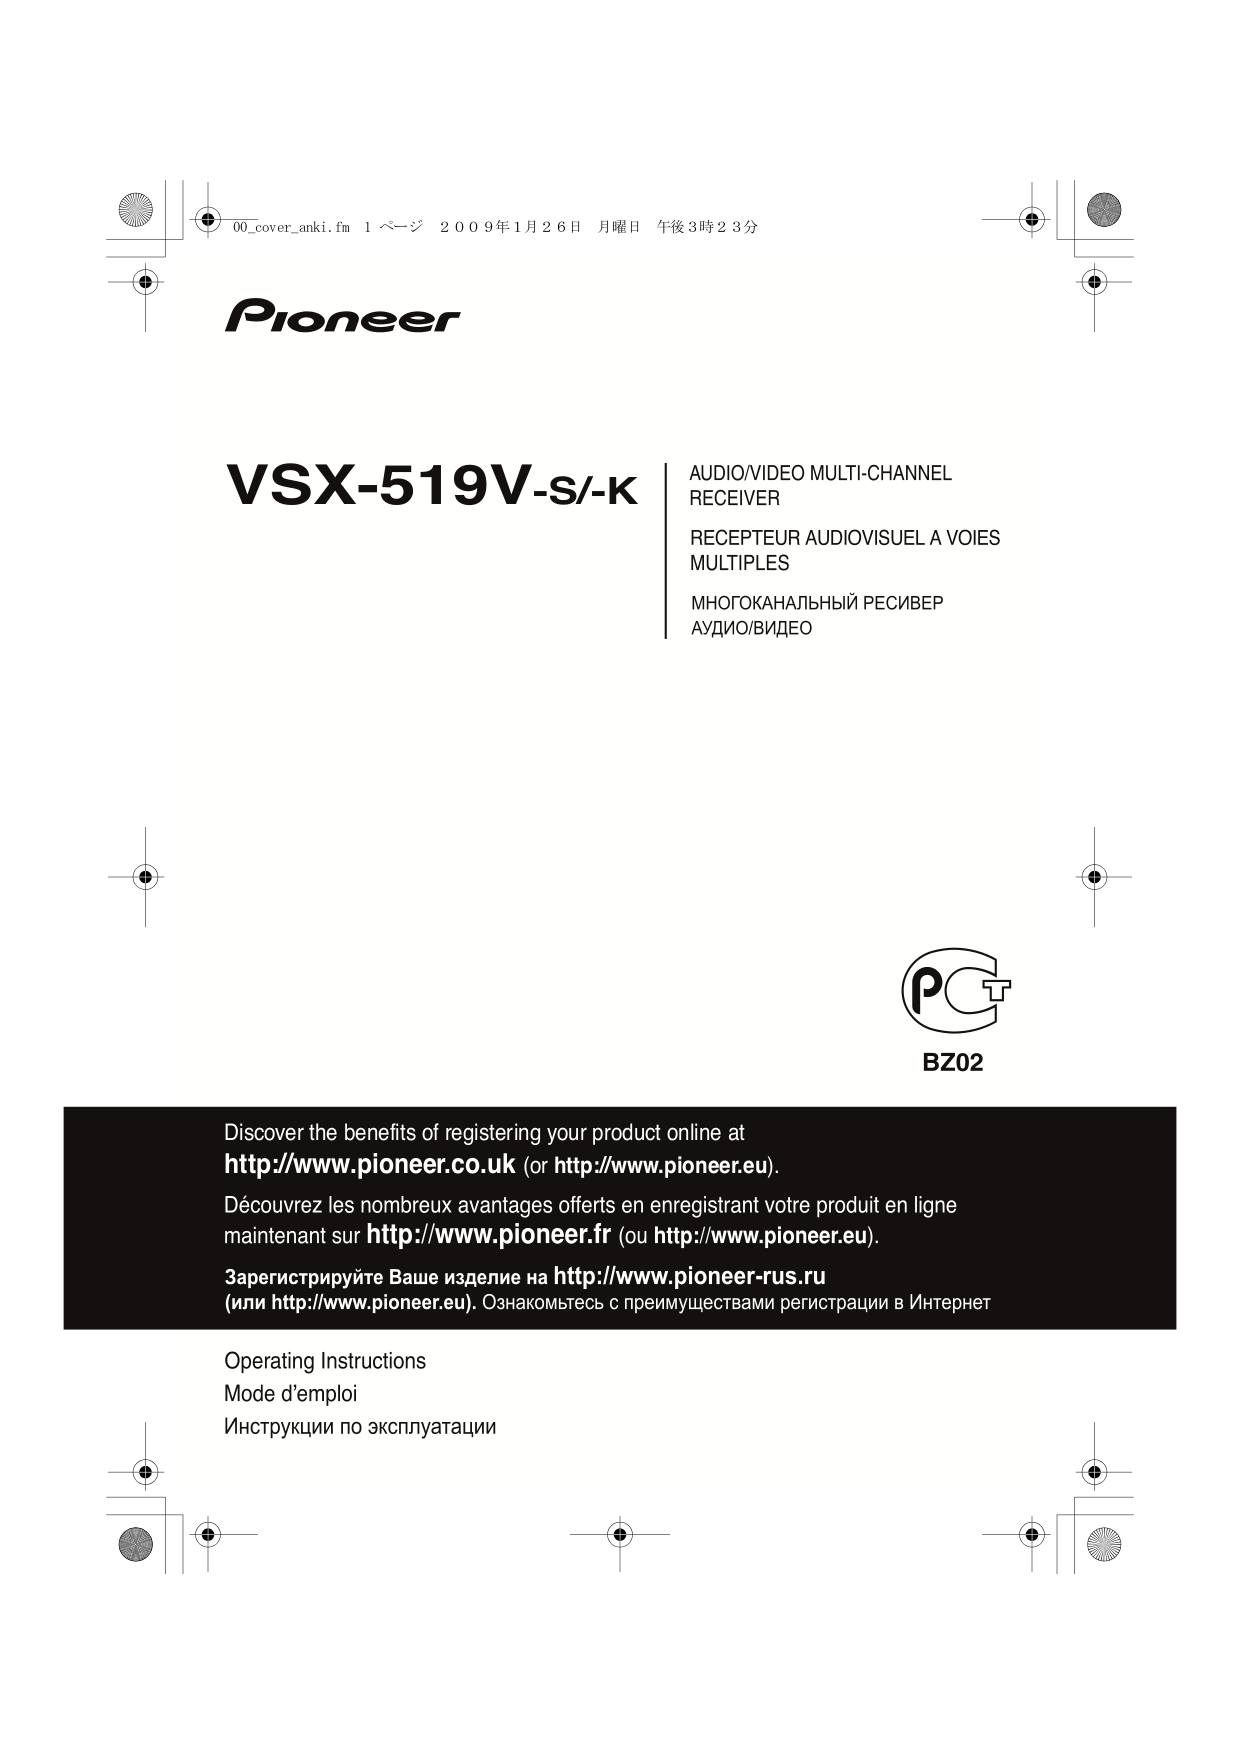 Download free pdf for Pioneer VSX-519V Receiver manual